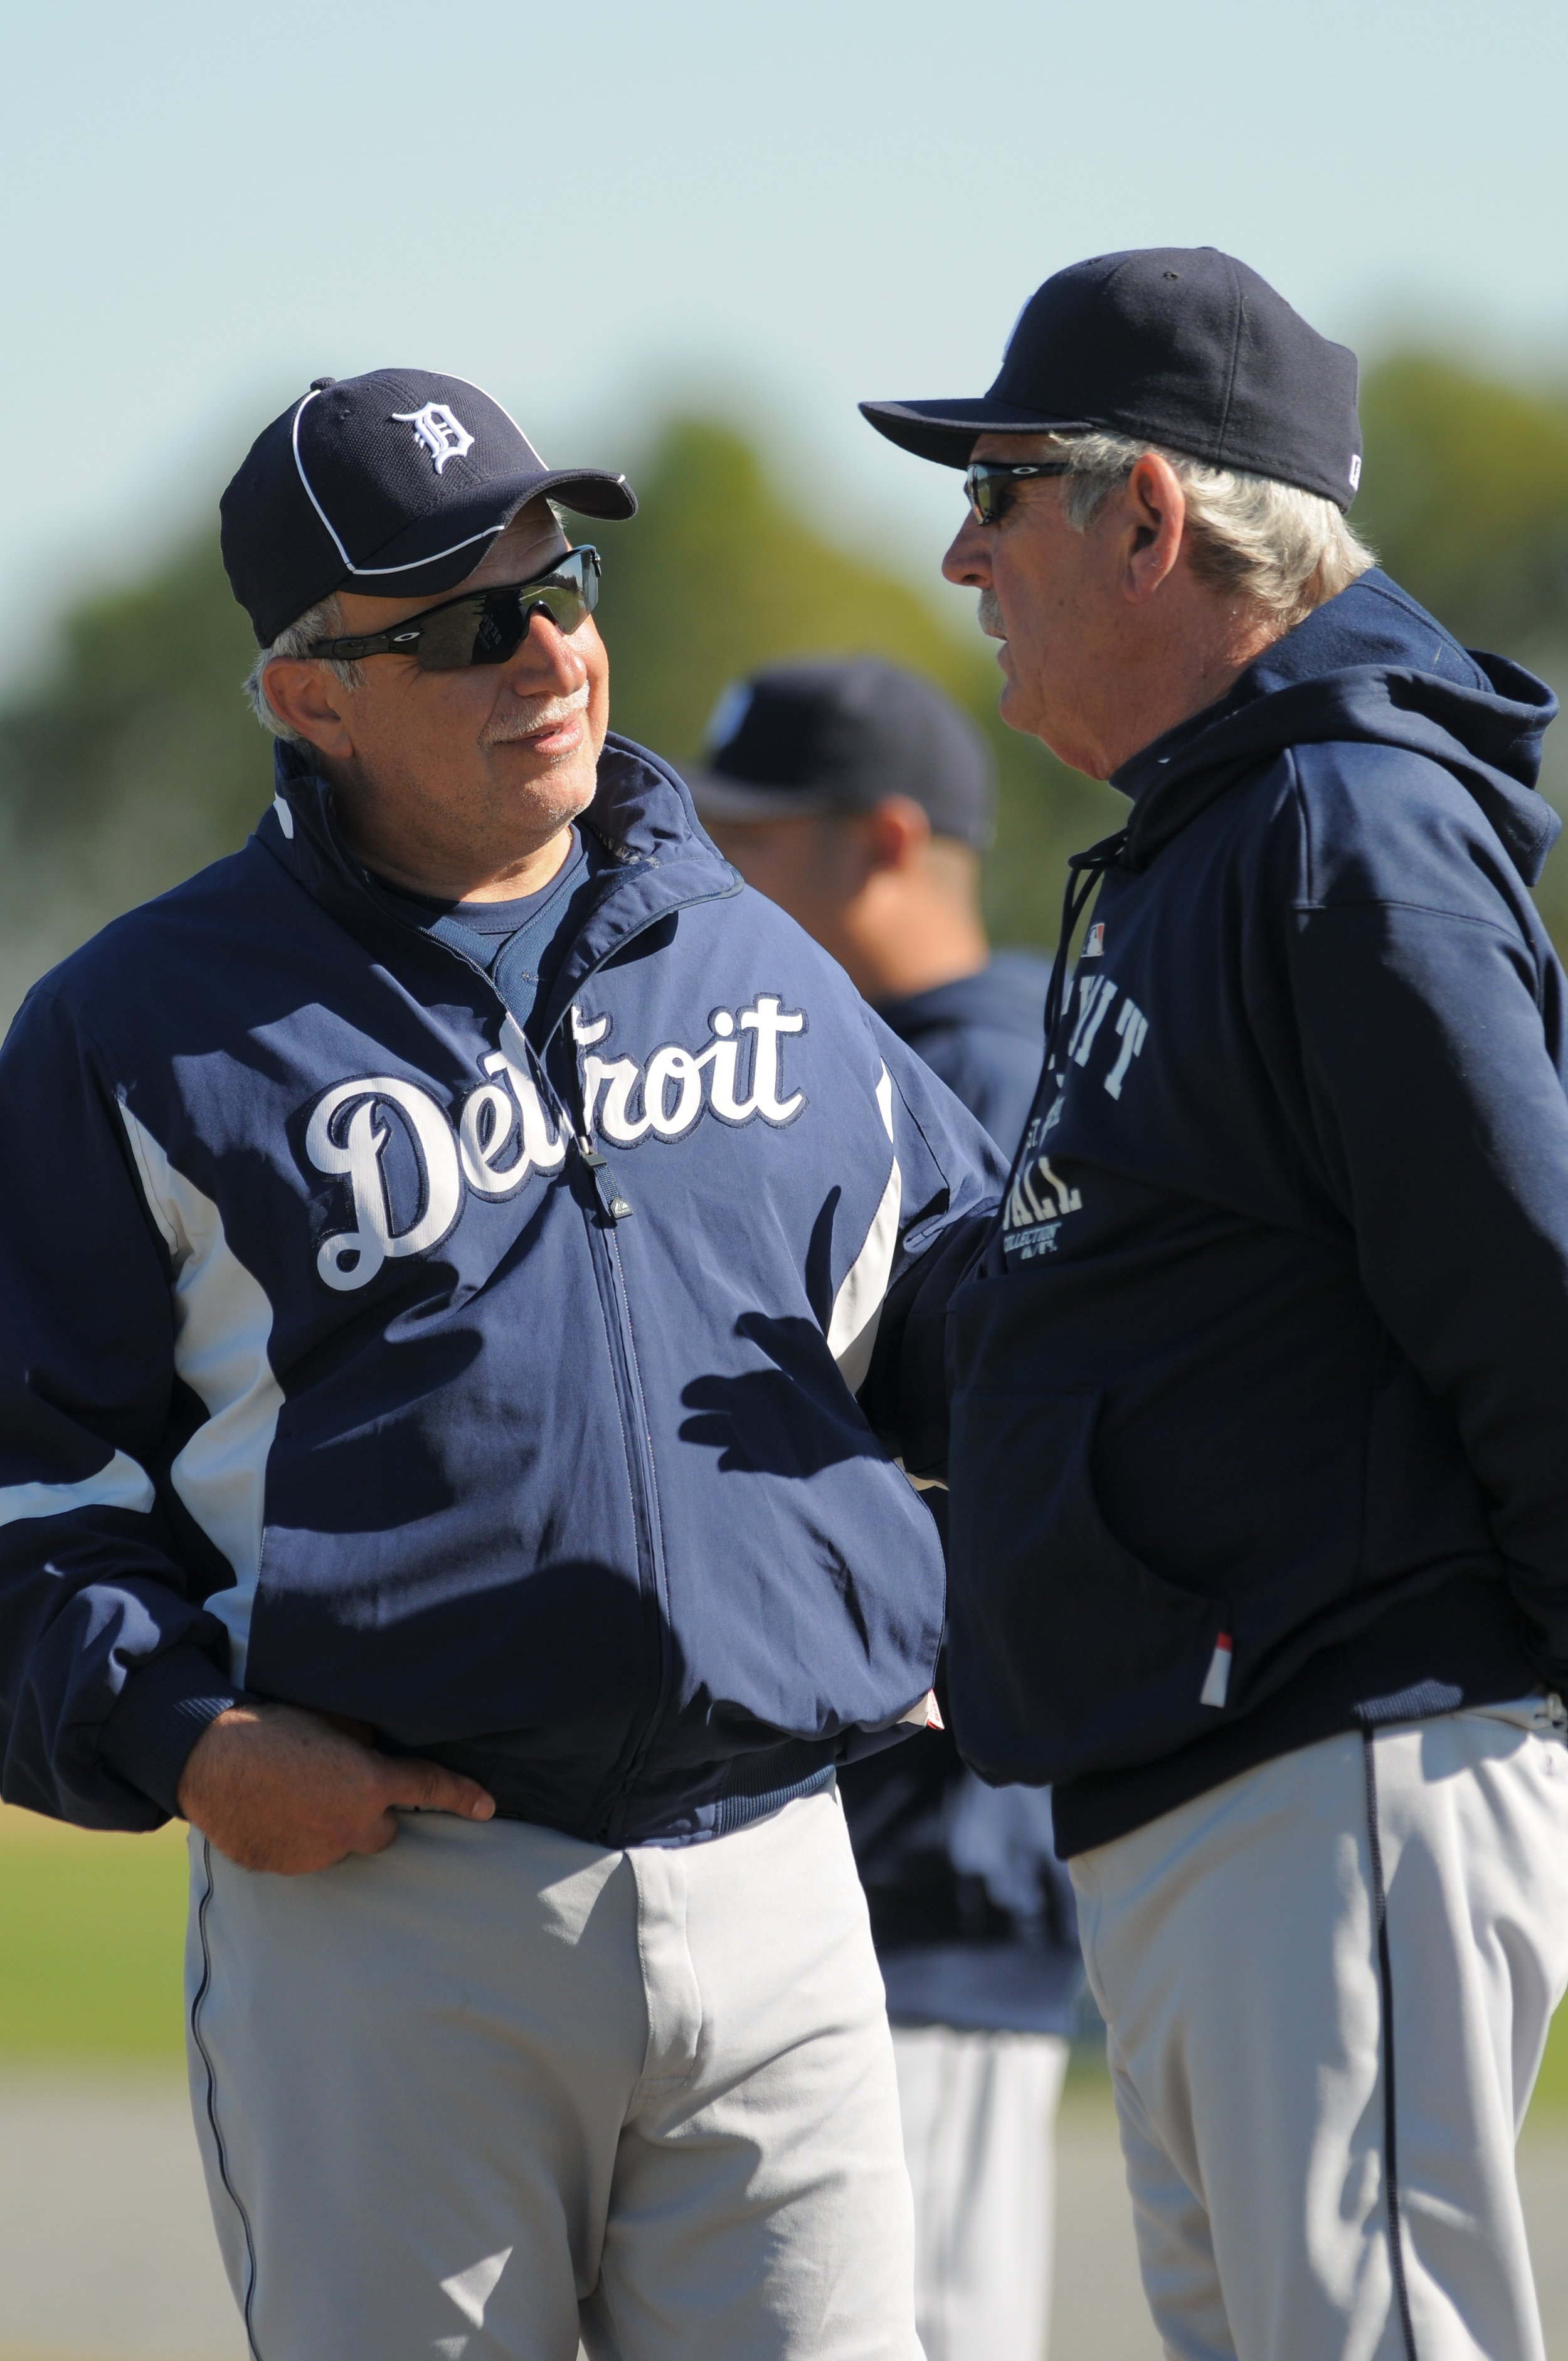 Dr. George Carlo   Dr. George Carlo has spent 15 years in professional baseball player development. He remains a performance coach for players at the collegiate and professional levels, including the NFL, NBA, NHL, PGA and USTA. His career spans more than thirty-five years and more than 200 medical, scientific and public policy publications in the areas of human performance, autonomic response and sports science. He has written three books, has appeared in four film documentaries, and his discoveries have been incorporated into U.S. and global patents in areas including neuro-physiological function and peak performance. He presently holds appointments as Chairman of the non-profit Secrets of Champions Foundation, as Chairman and CEO of Secrets of Champions, Ltd., and is Visiting Professor at Longwood University in Virginia.